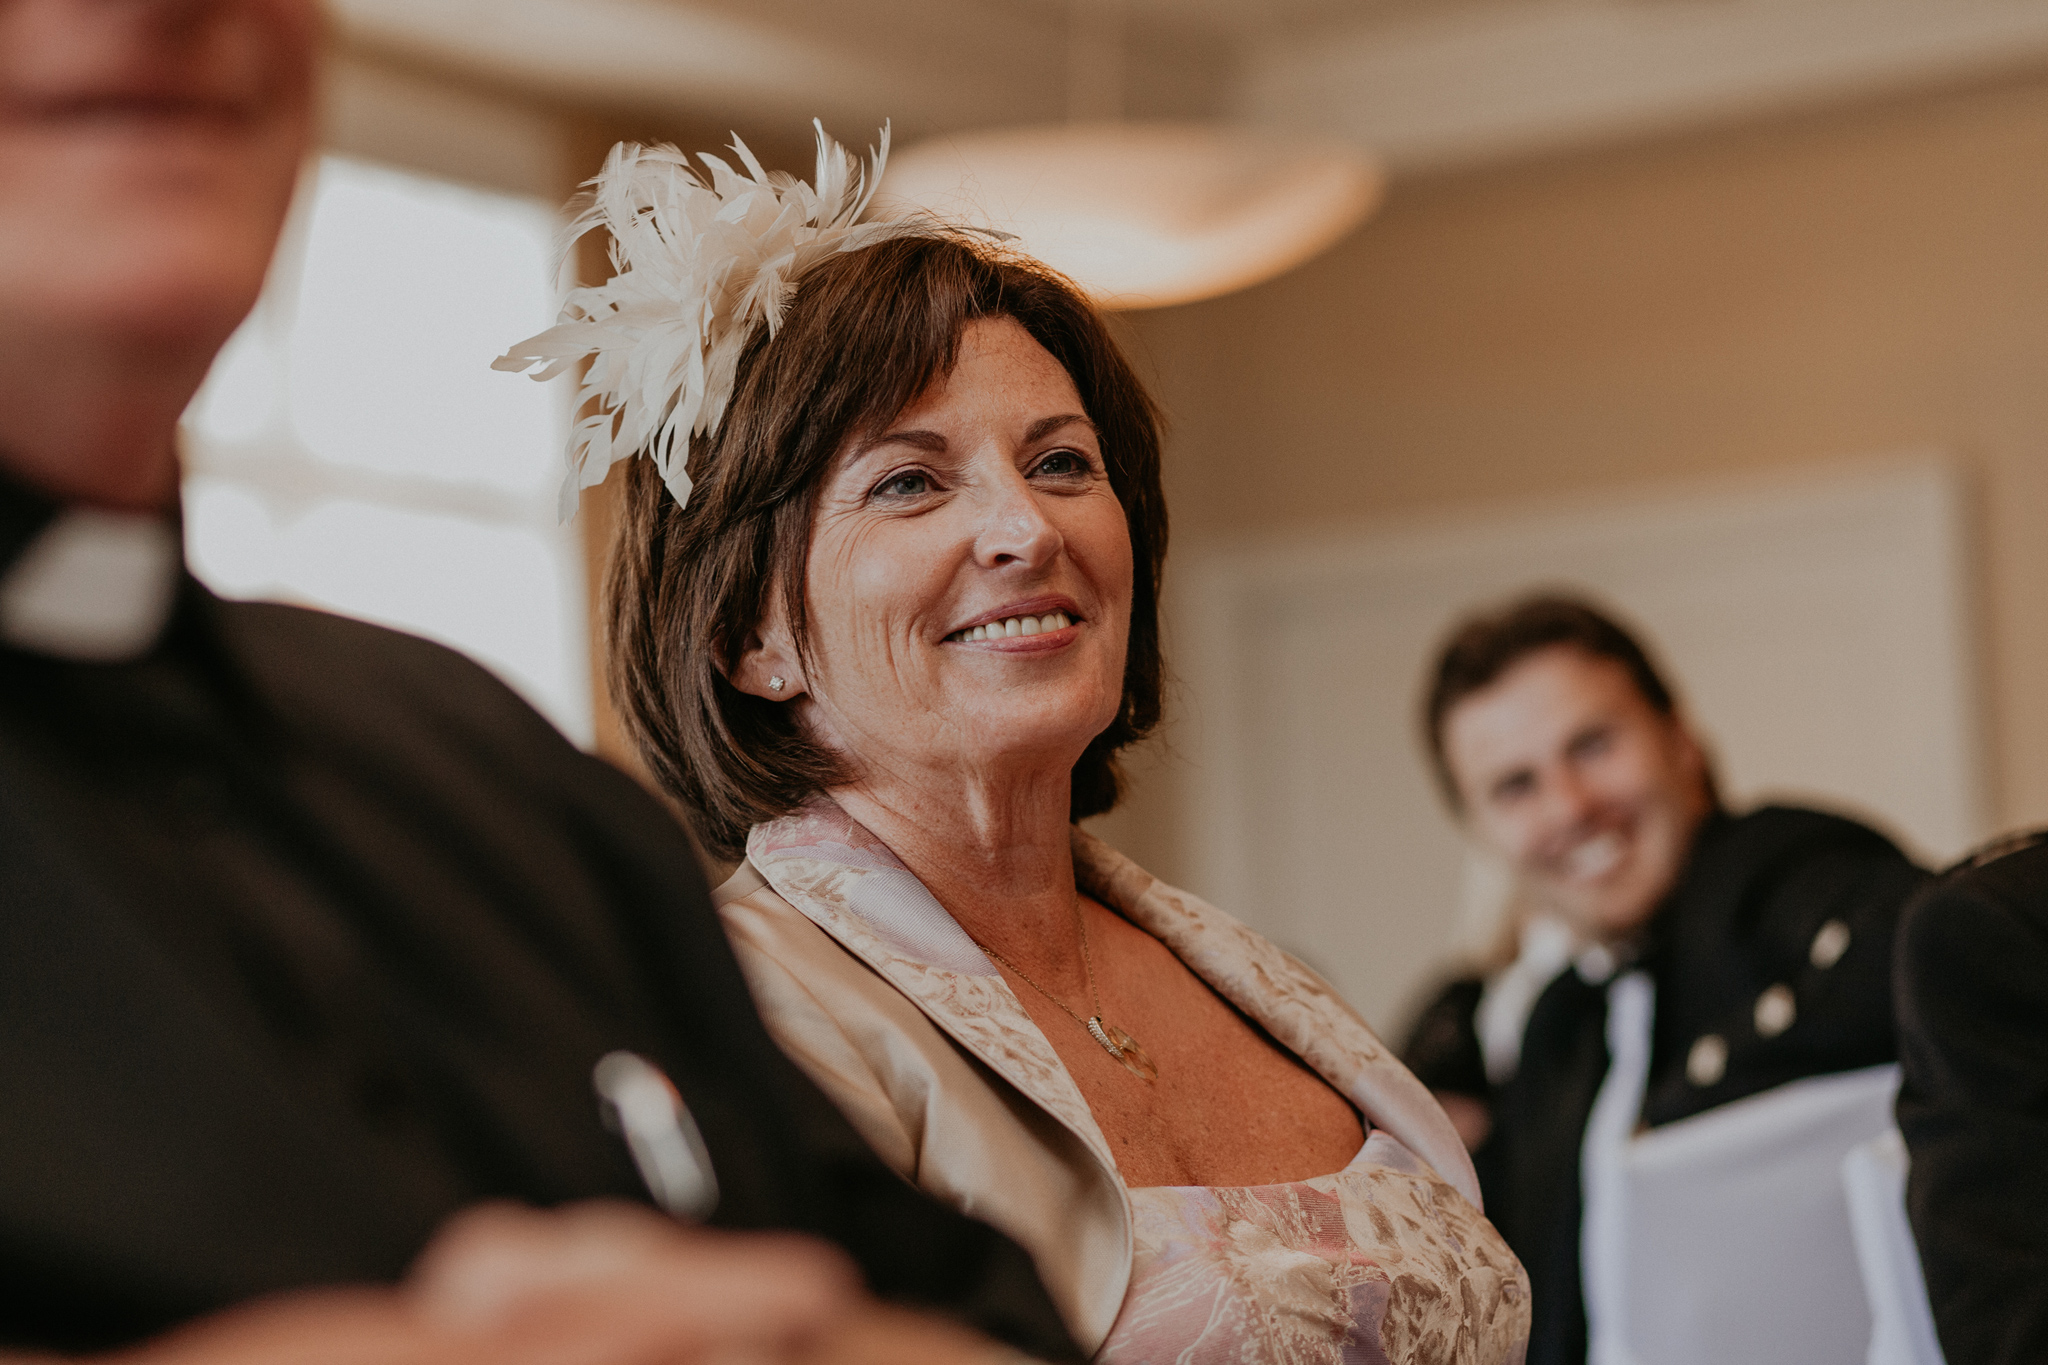 Mother of groom smiles during speeches at reception